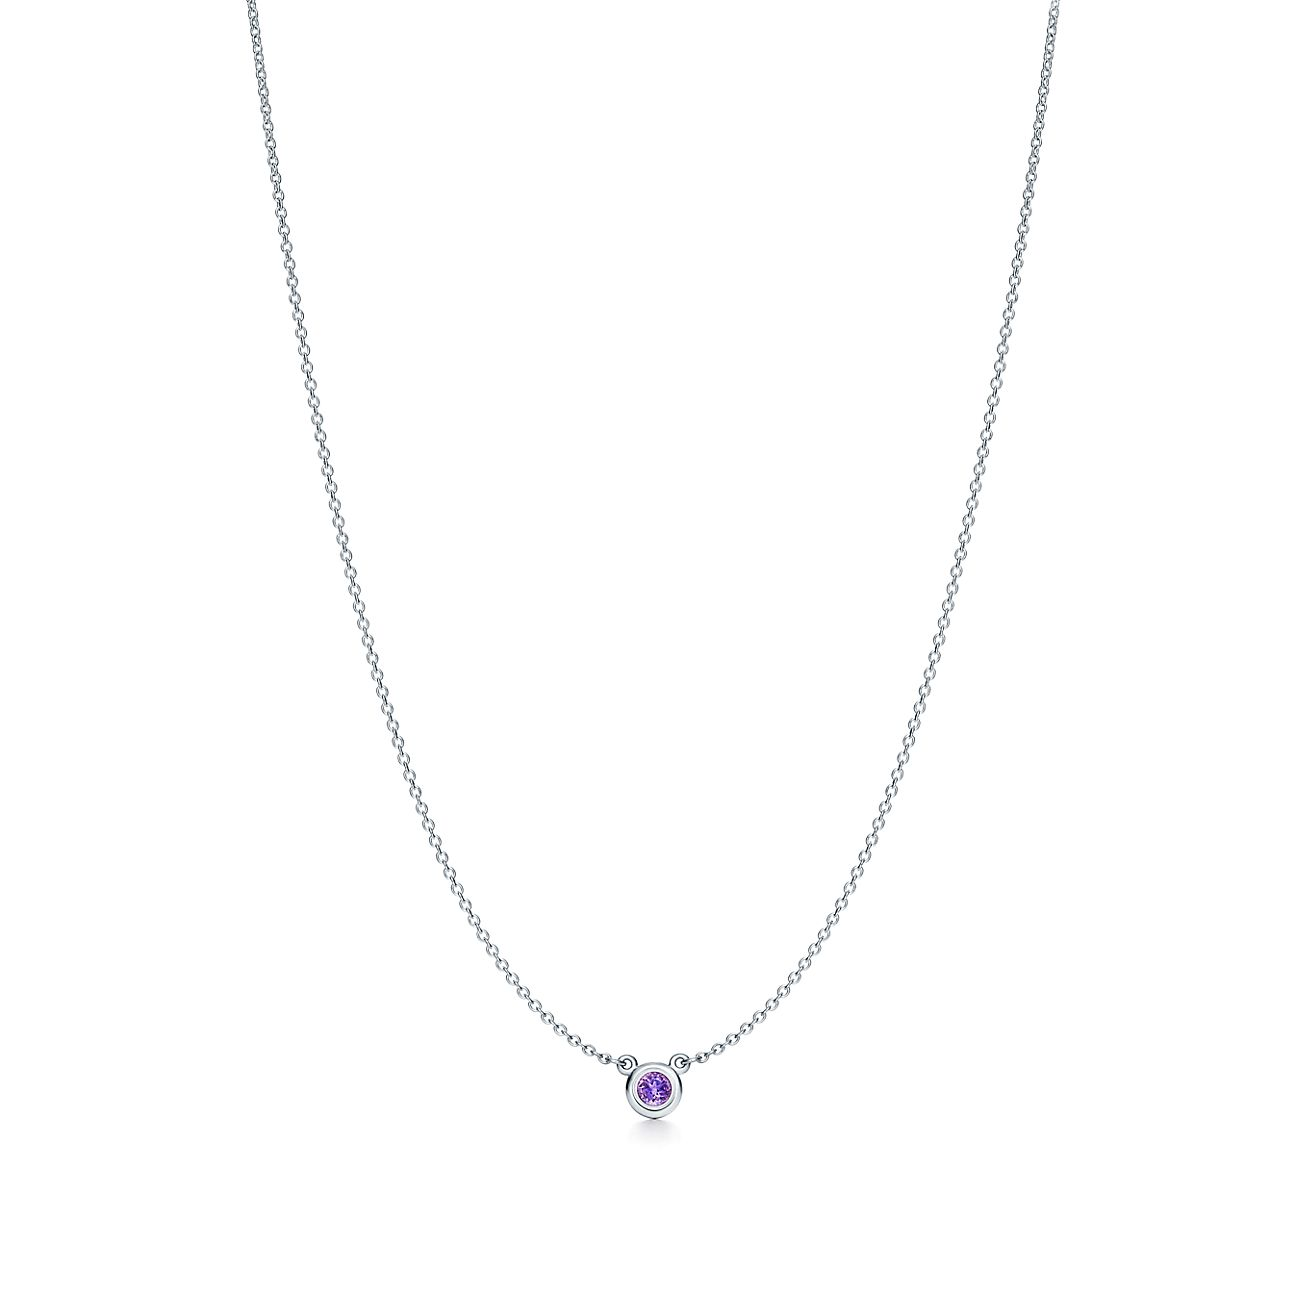 Elsa Peretti Color by the Yard pendant in sterling silver with an amethyst Tiffany & Co.